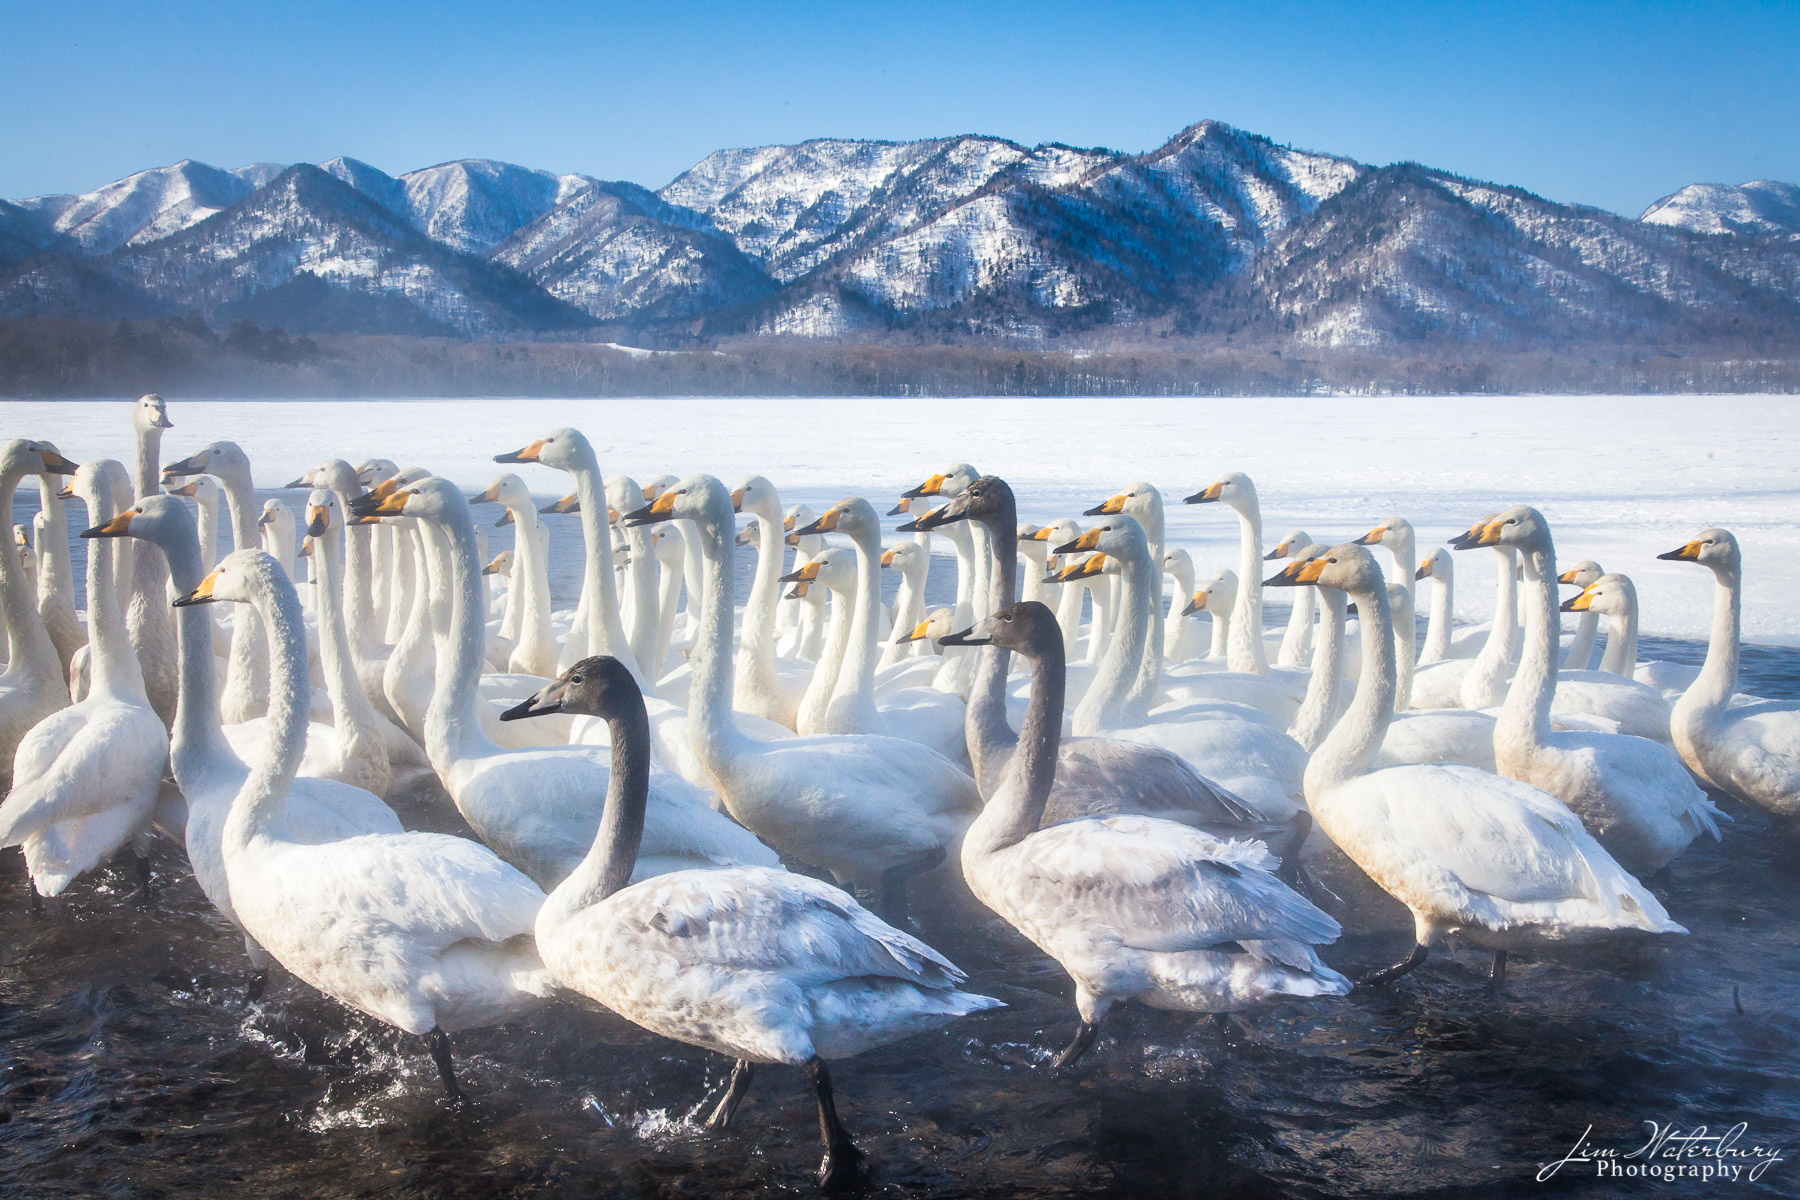 Whooper swans at Lake Kussharo, Hokkaido, Japan, flock together, drawn by locals offering them grain.